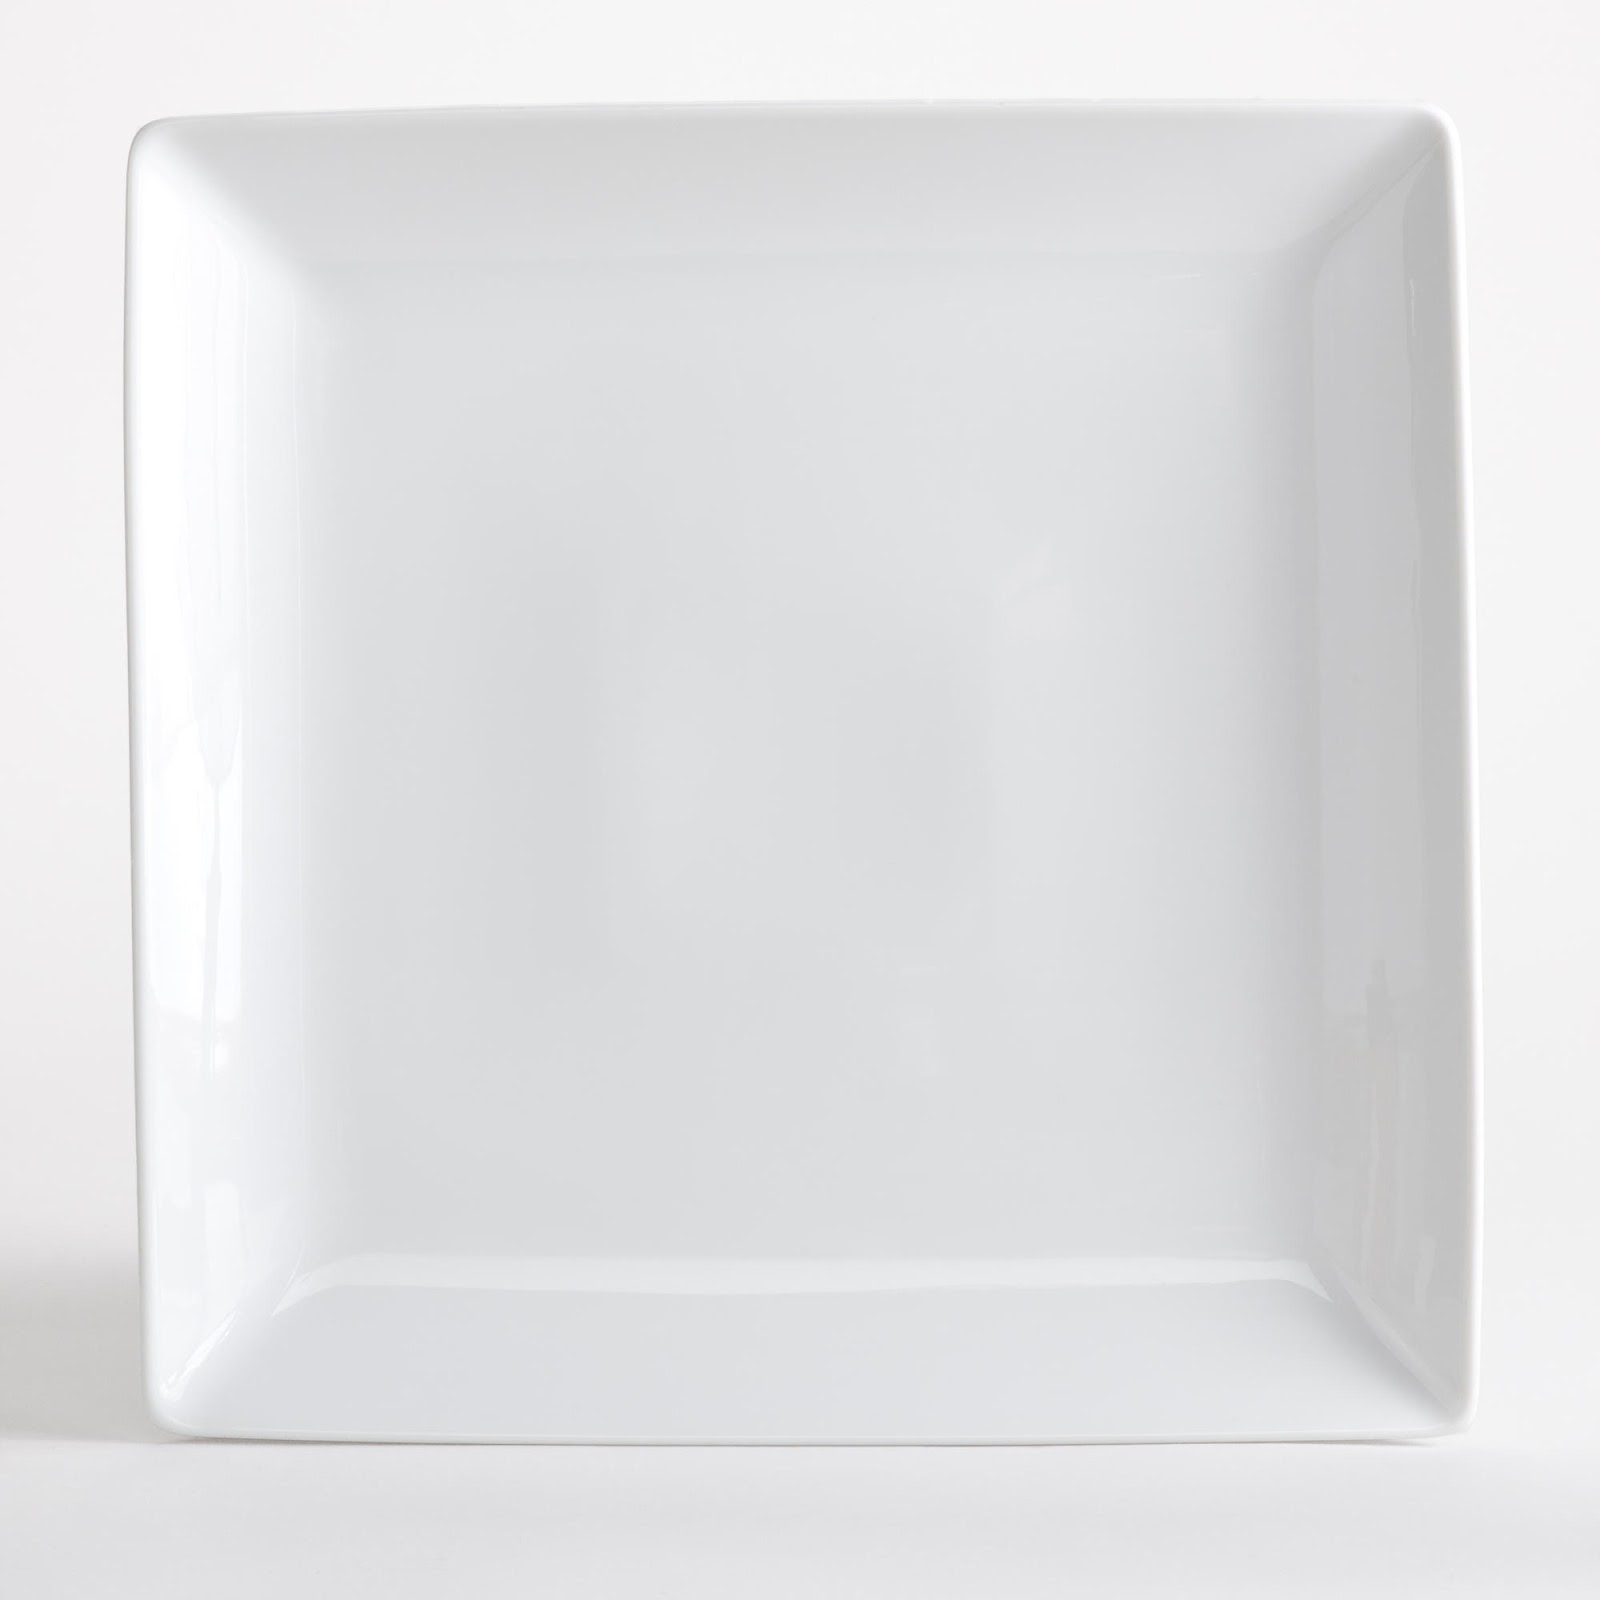 Square Plates Restoration Hardware Chinese Porcelain Square Rimmed